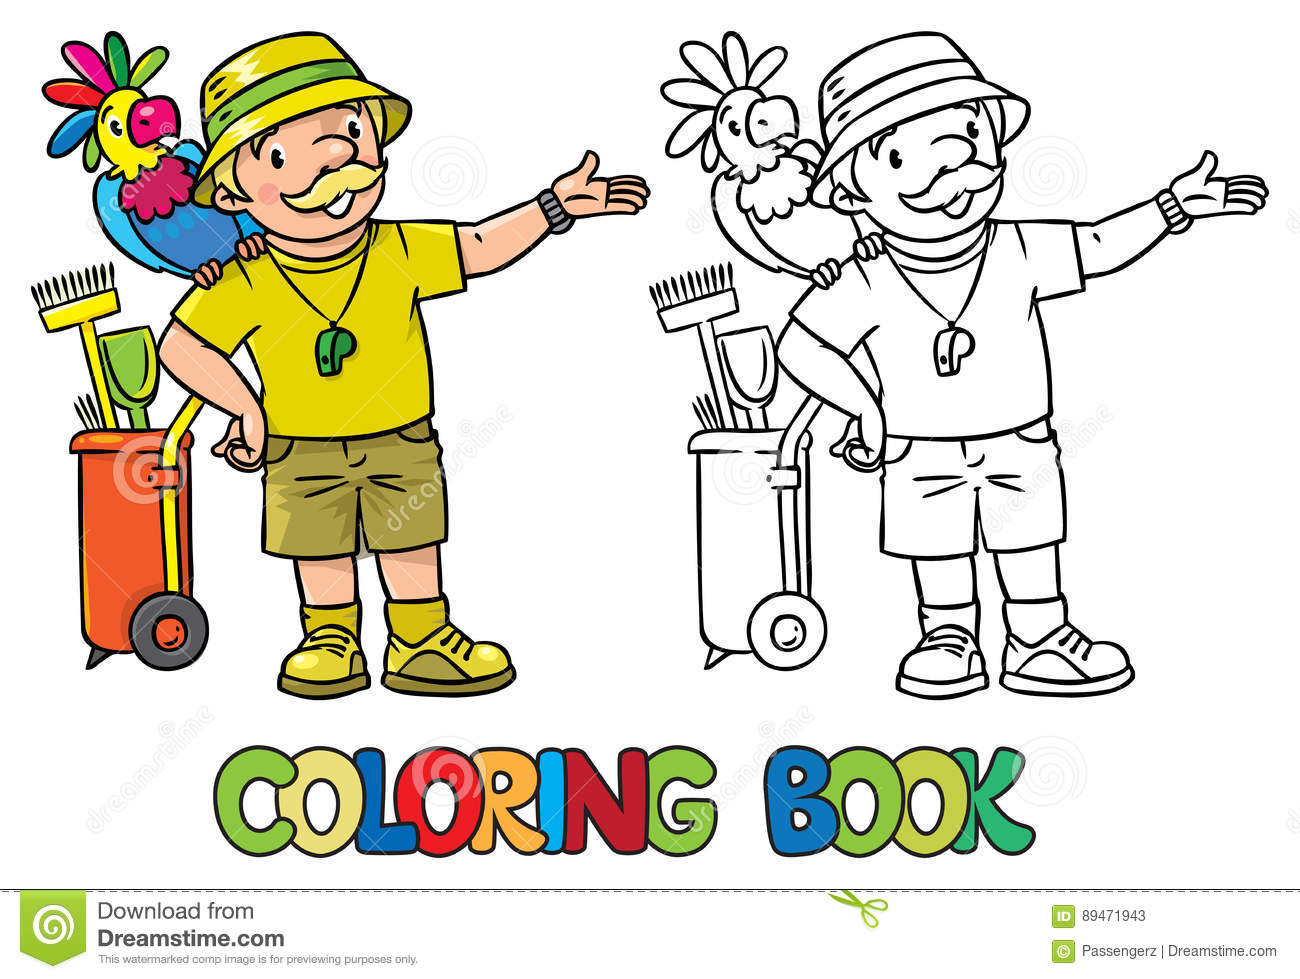 The zoology coloring book - Coloring Book Of Funny Zoo Keeper With Parrot Stock Photos